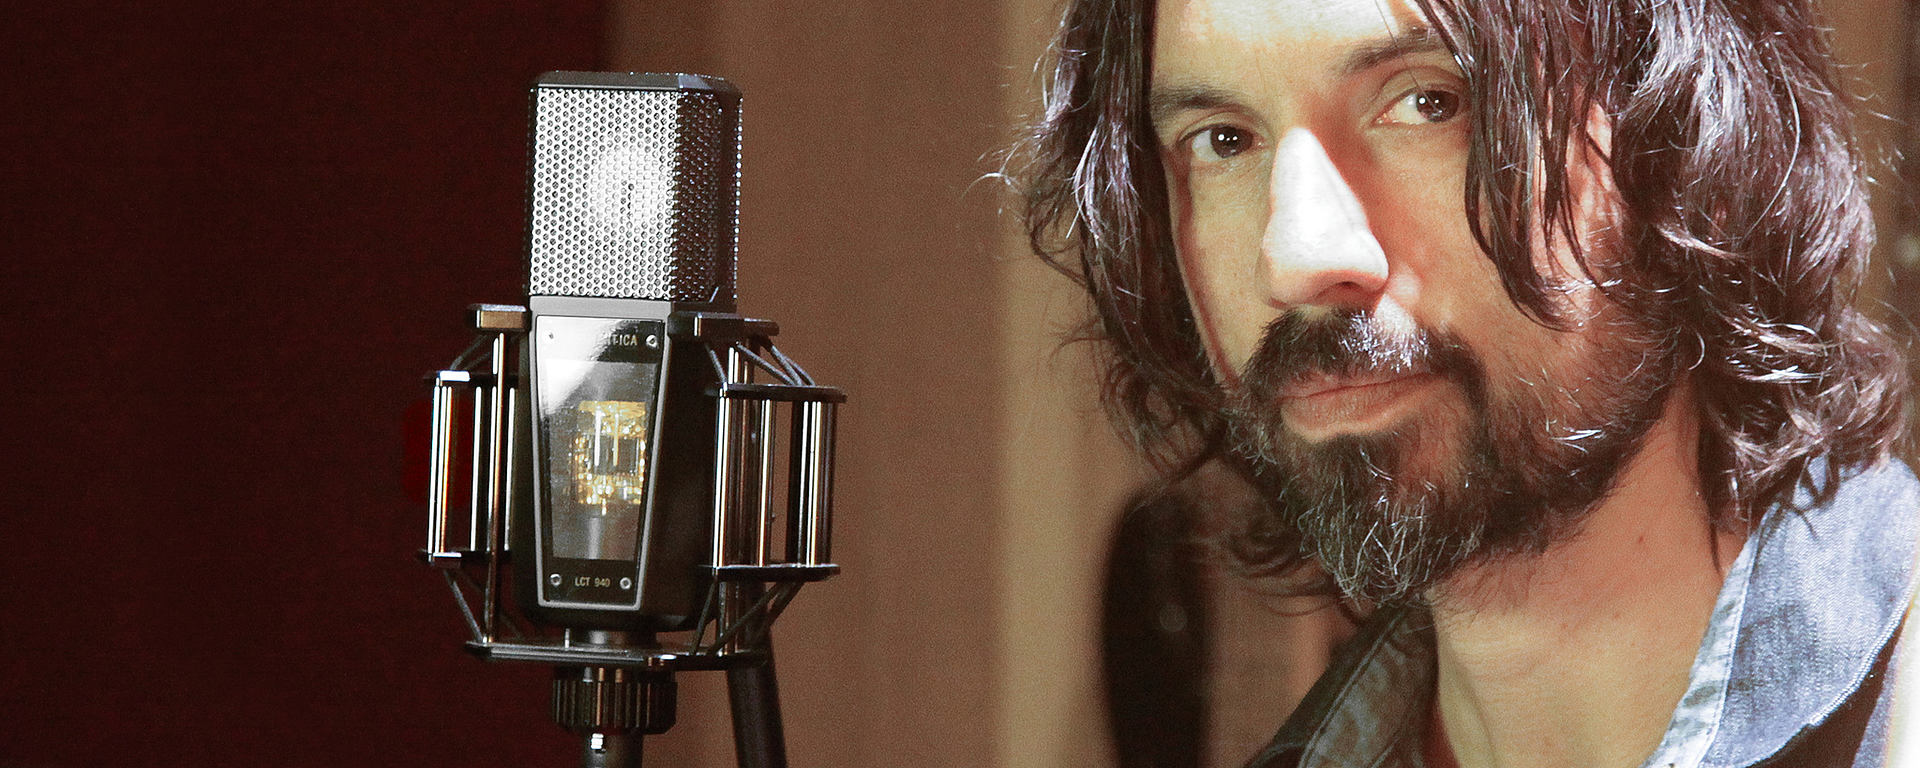 This image shows a sound engineer in studio with his LCT 940 Tube/FET microphone